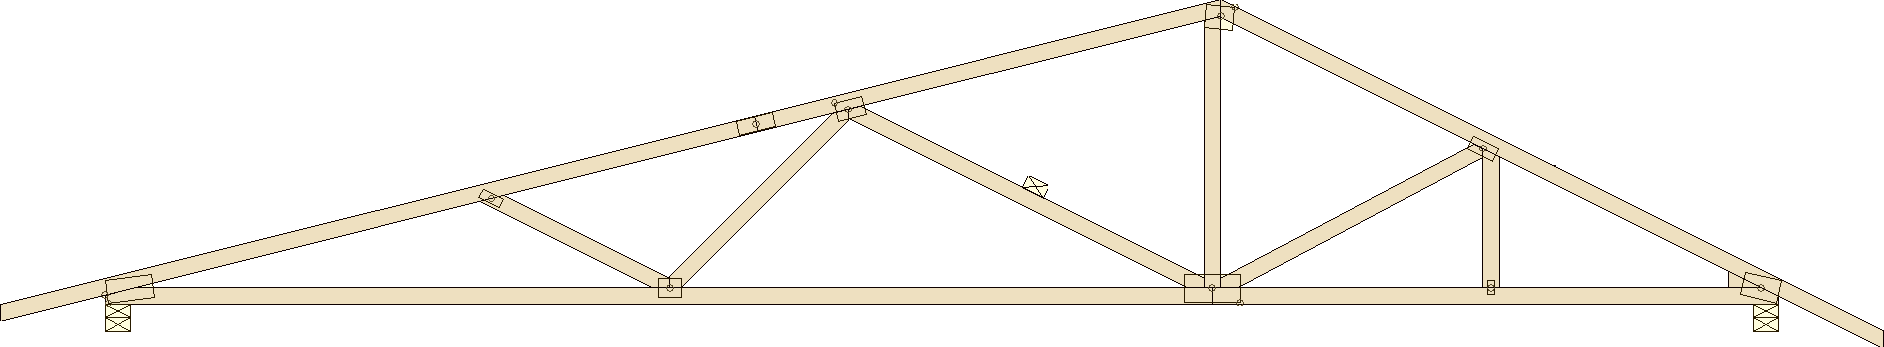 Truss types prairie truss for Double hip roof design